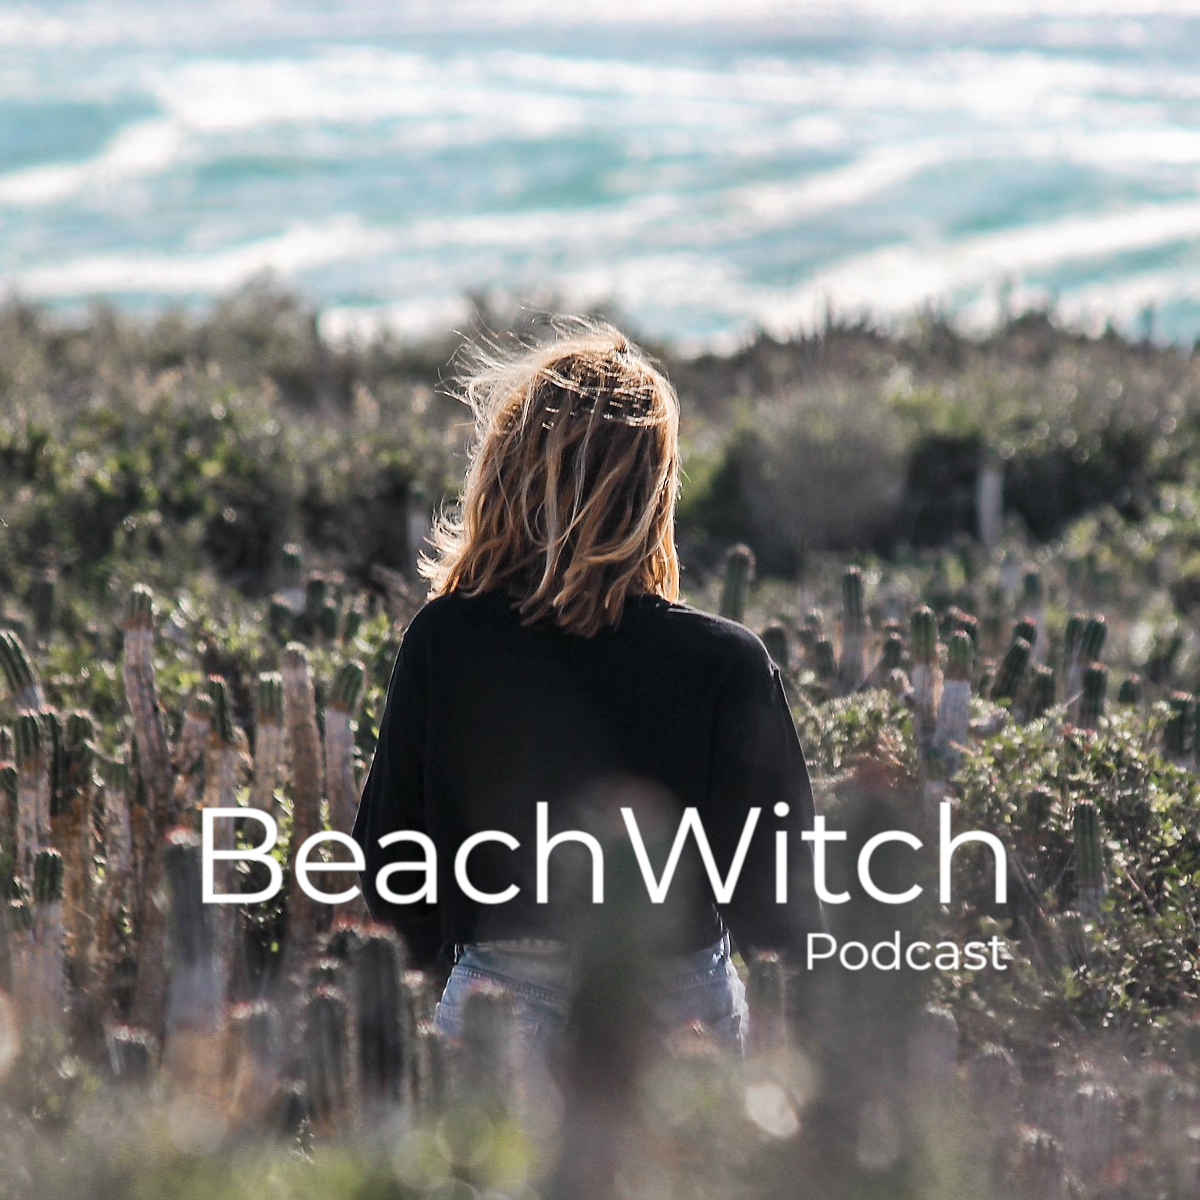 BEACHWITCH PODCAST - Help support Sabrina's Podcast Project on GoFundMe.https://www.gofundme.com/sabrina-podcast